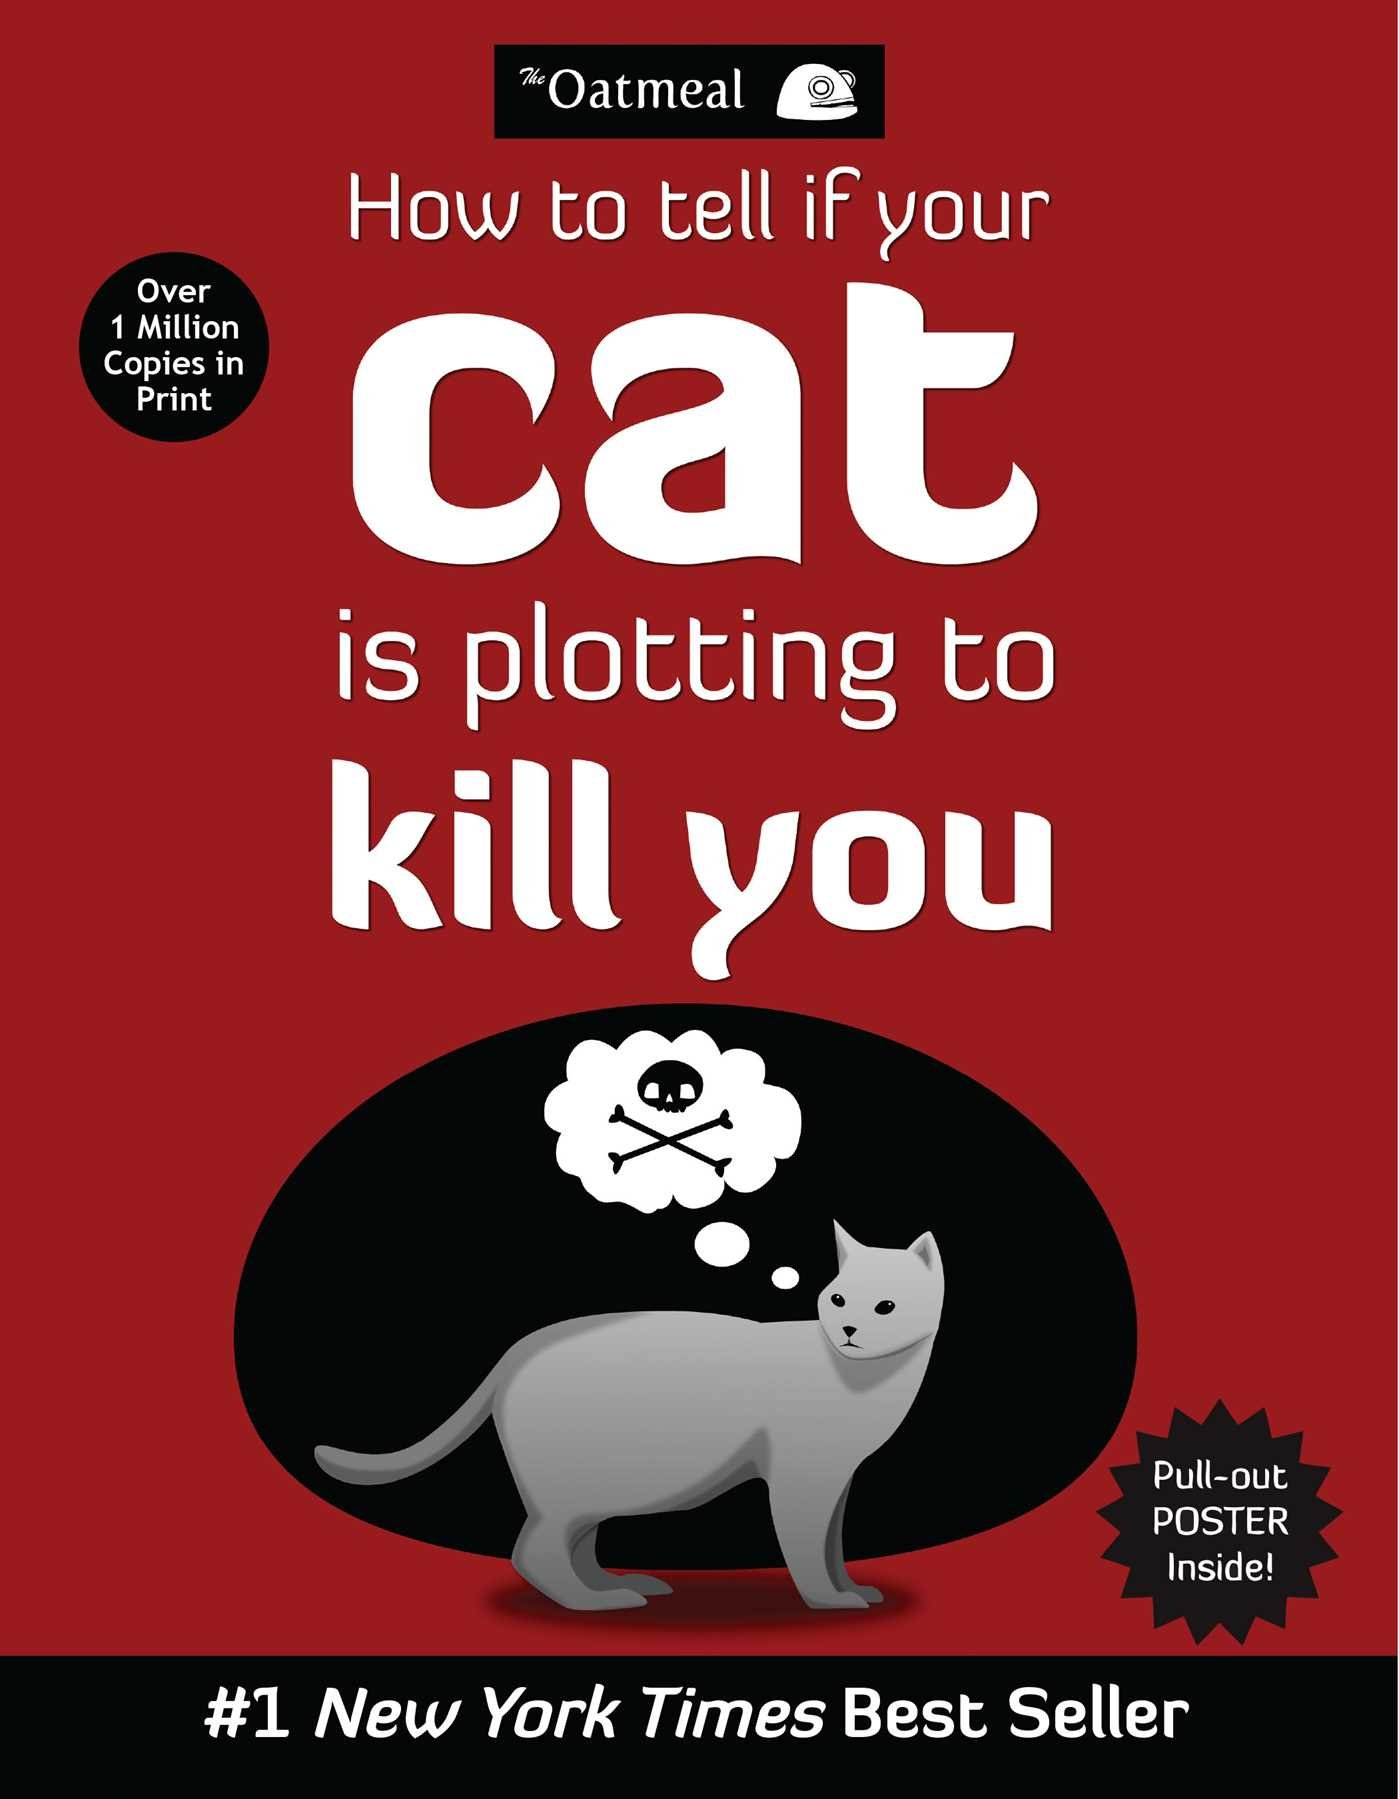 How to Tell If Your Cat Is Plotting to Kill You The Oatmeal: Amazon.es: The Oatmeal, Matthew Inman: Libros en idiomas extranjeros